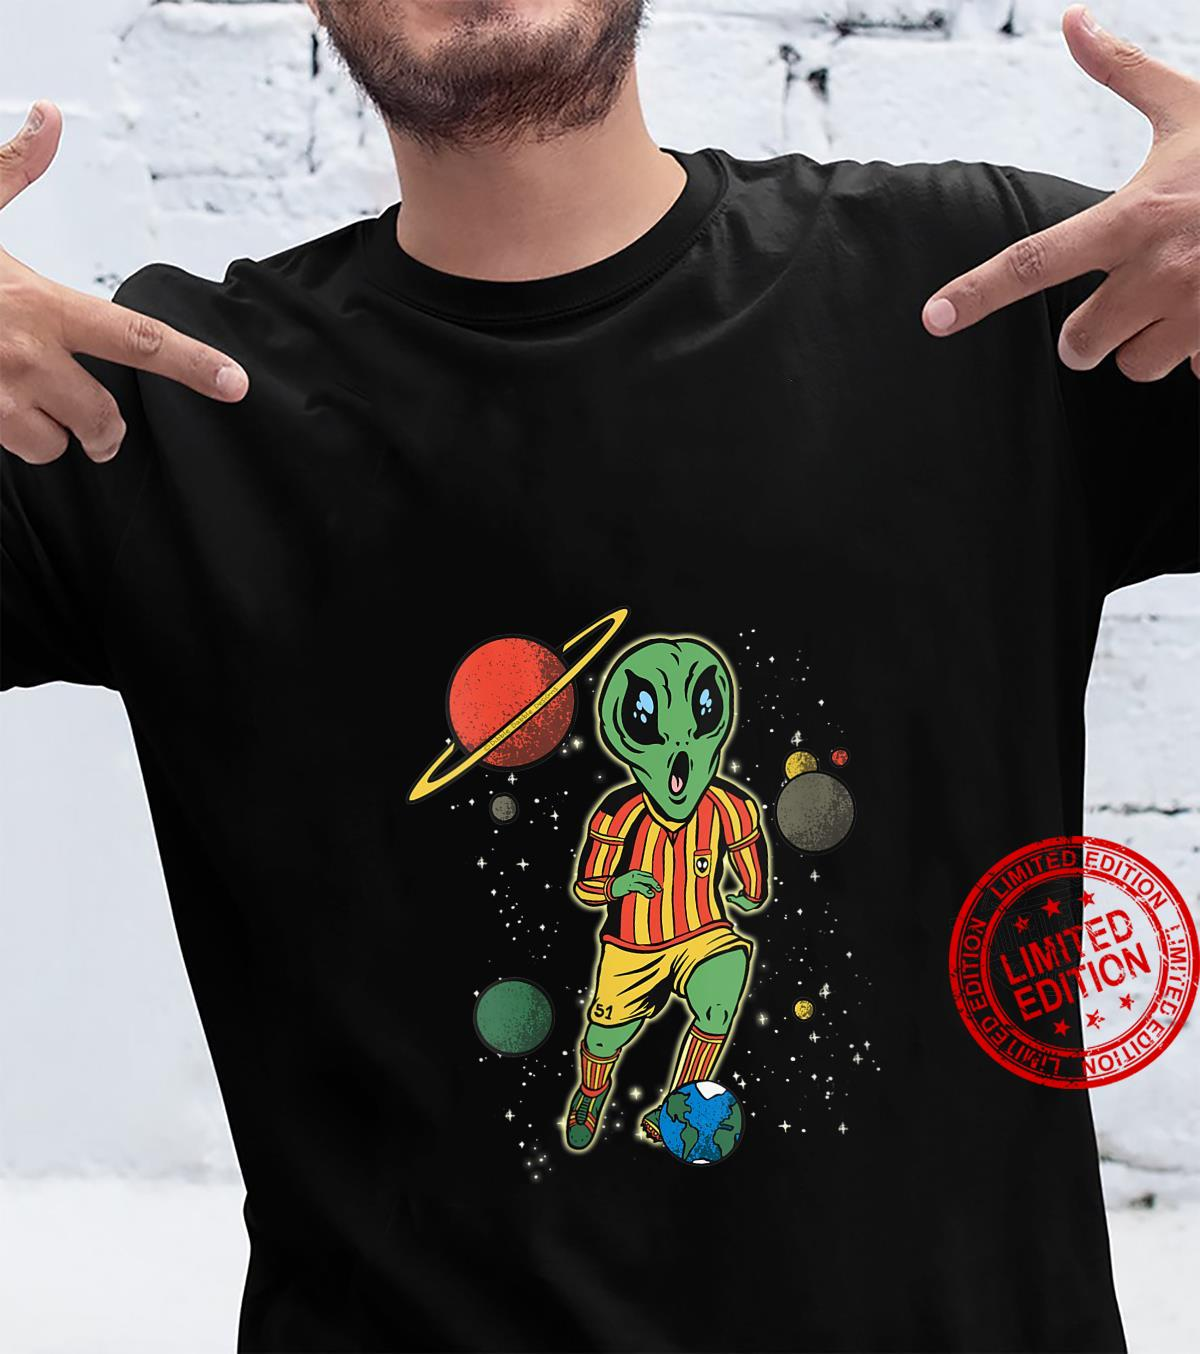 Womens Soccer Player in Space with Alien Soccer Shirt